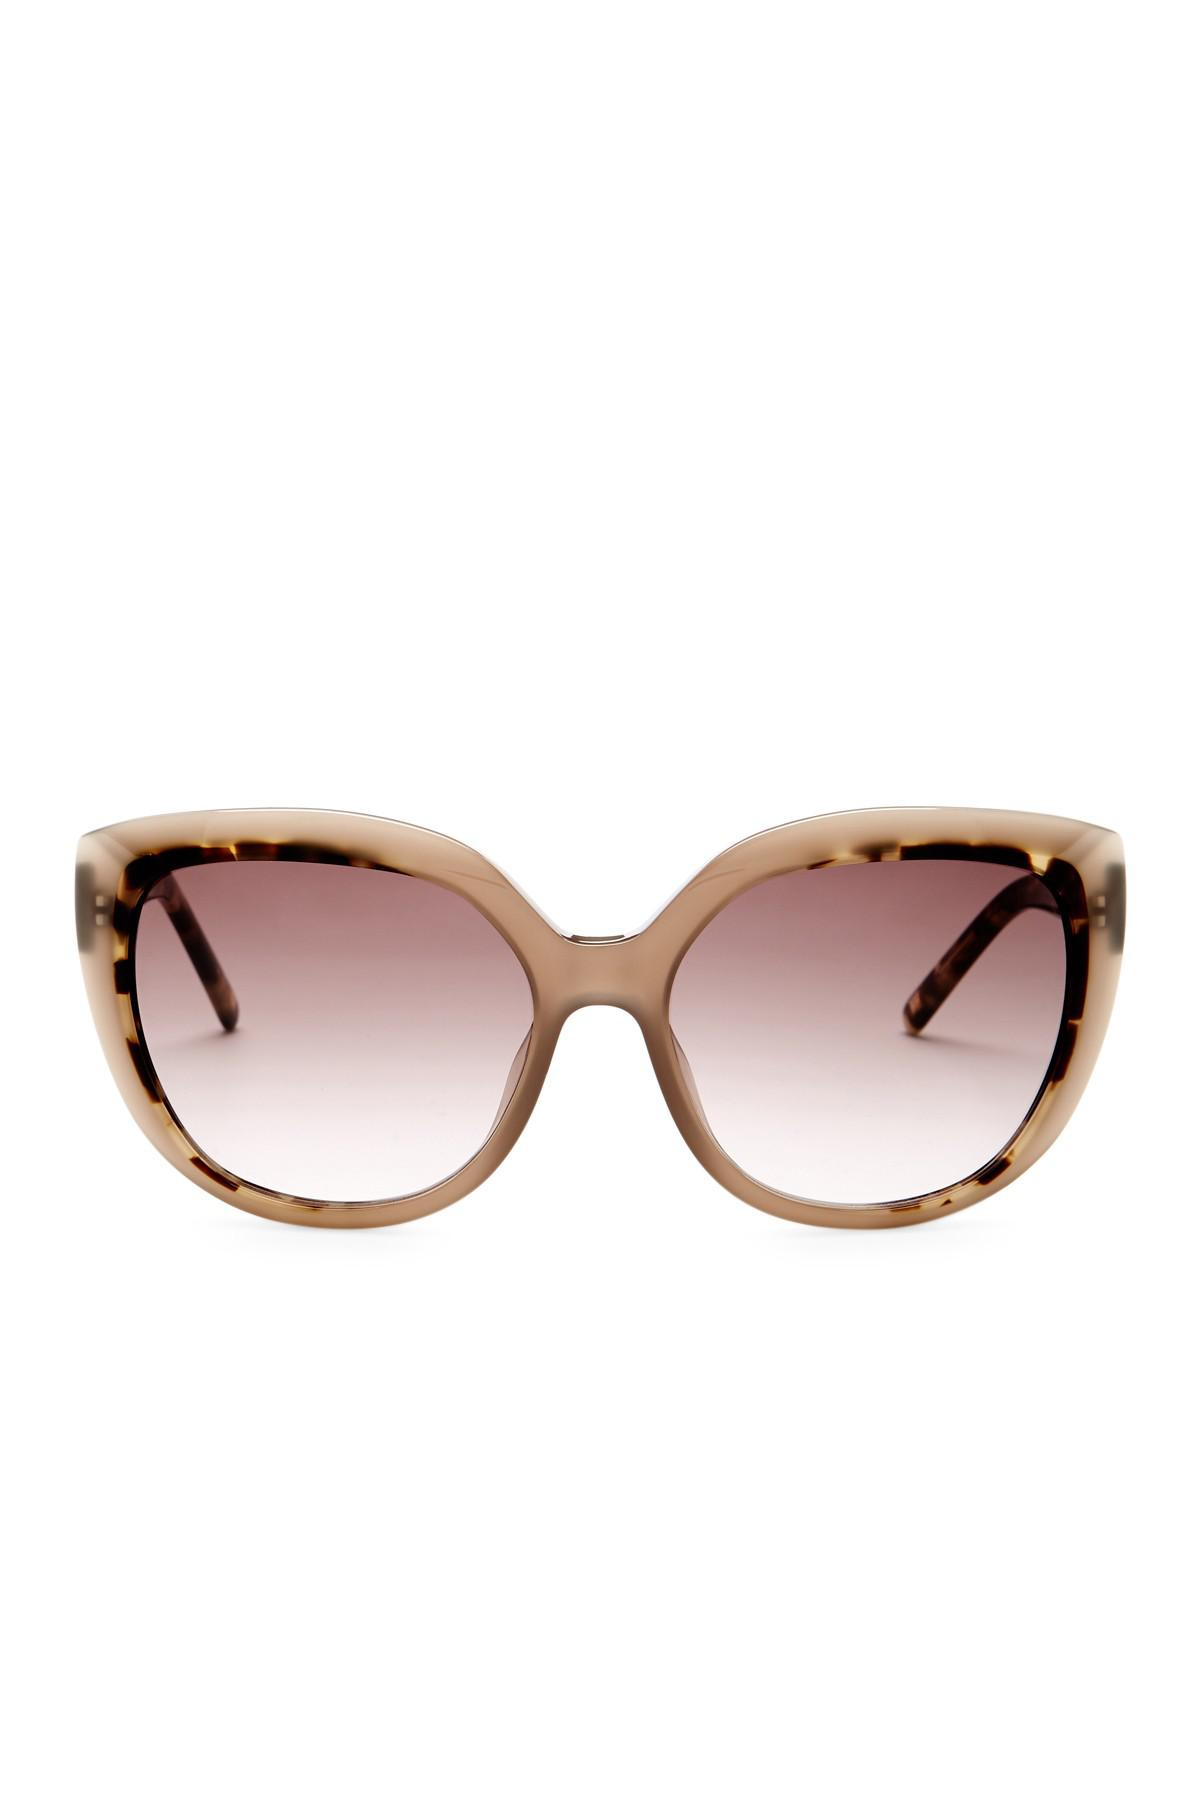 f24ce4ec28 Gallery. Previously sold at  Nordstrom Rack · Women s Cat Eye Sunglasses